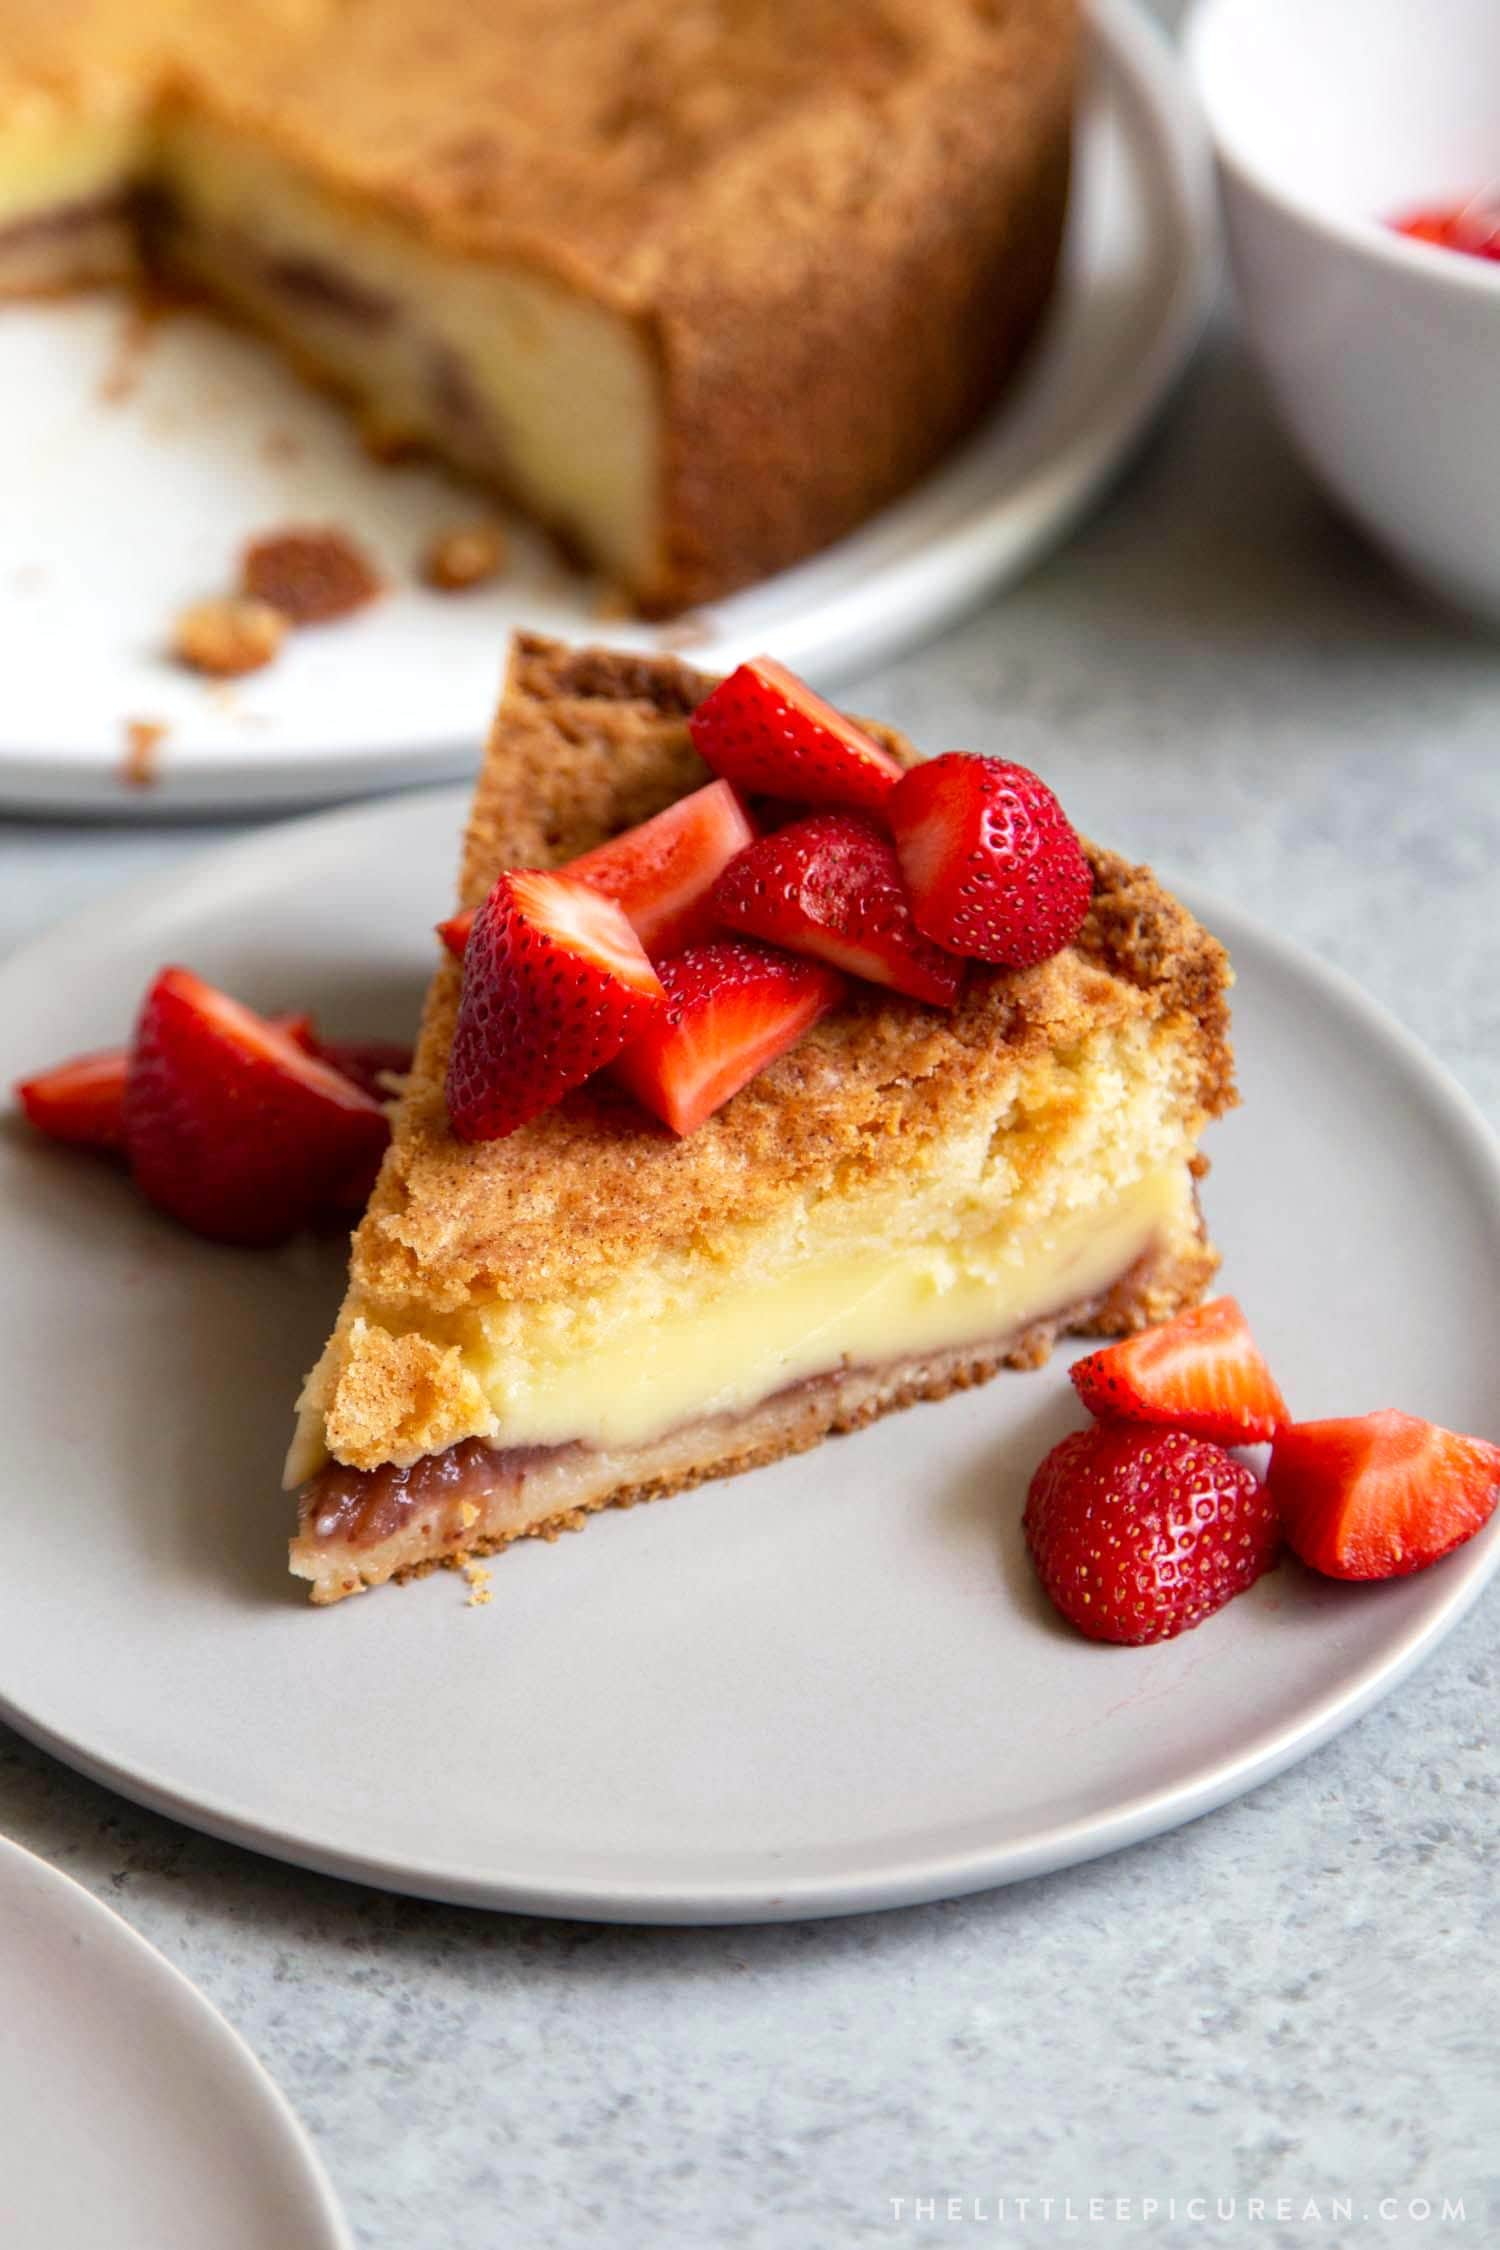 Basque Cake served with fresh strawberries. Basque cake is a buttery cake with a pastry cream filling.